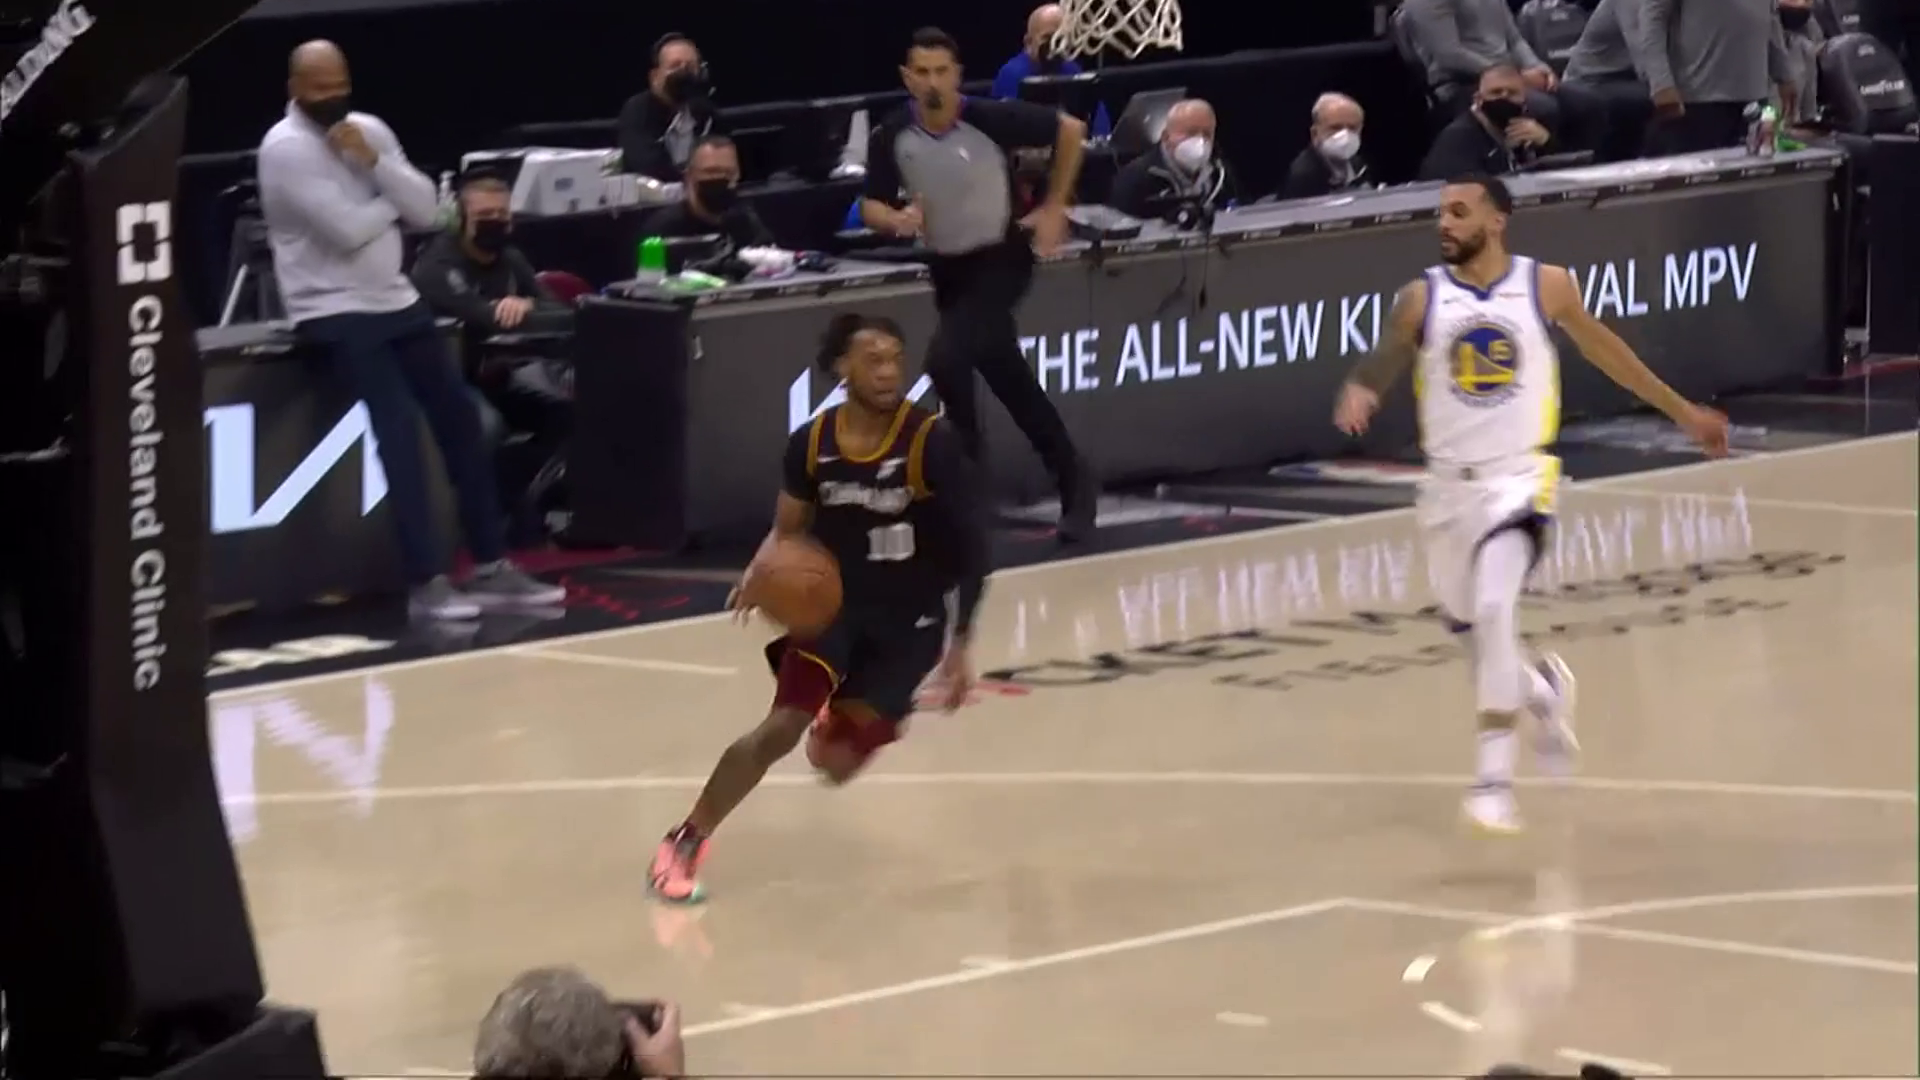 Garland with the Steal and Score